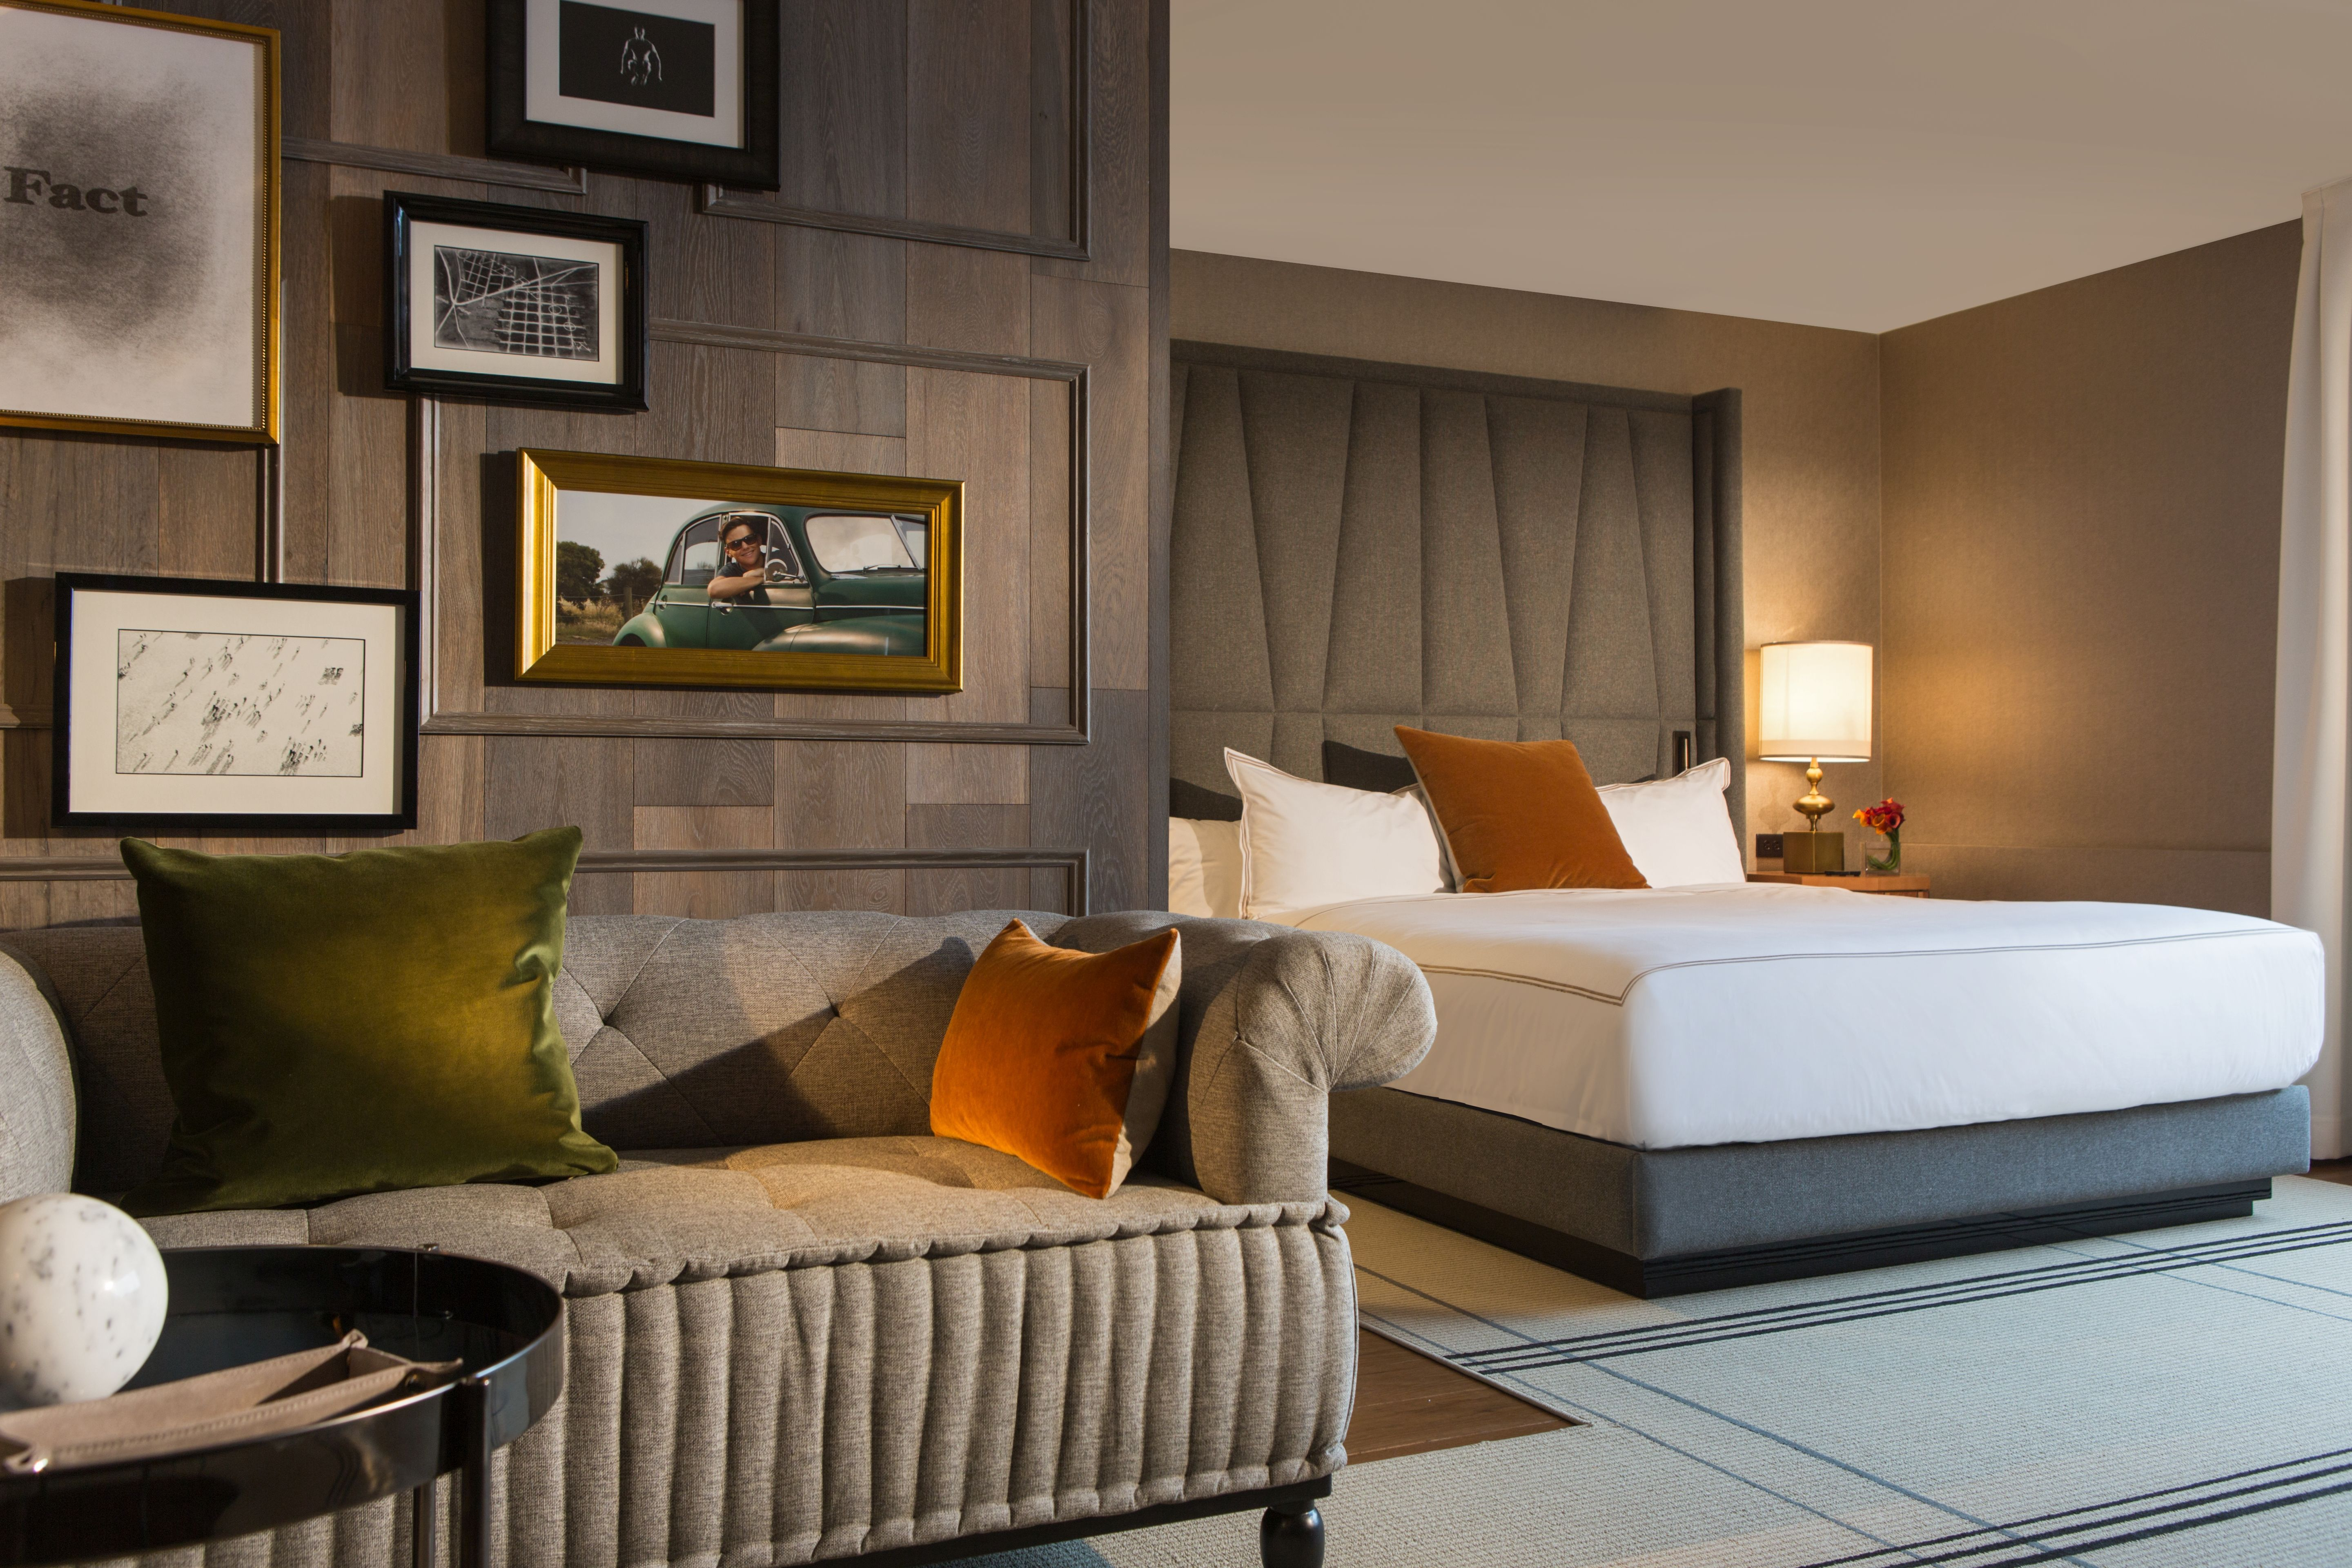 18 new hotels to open in washington dc in 2016 2017